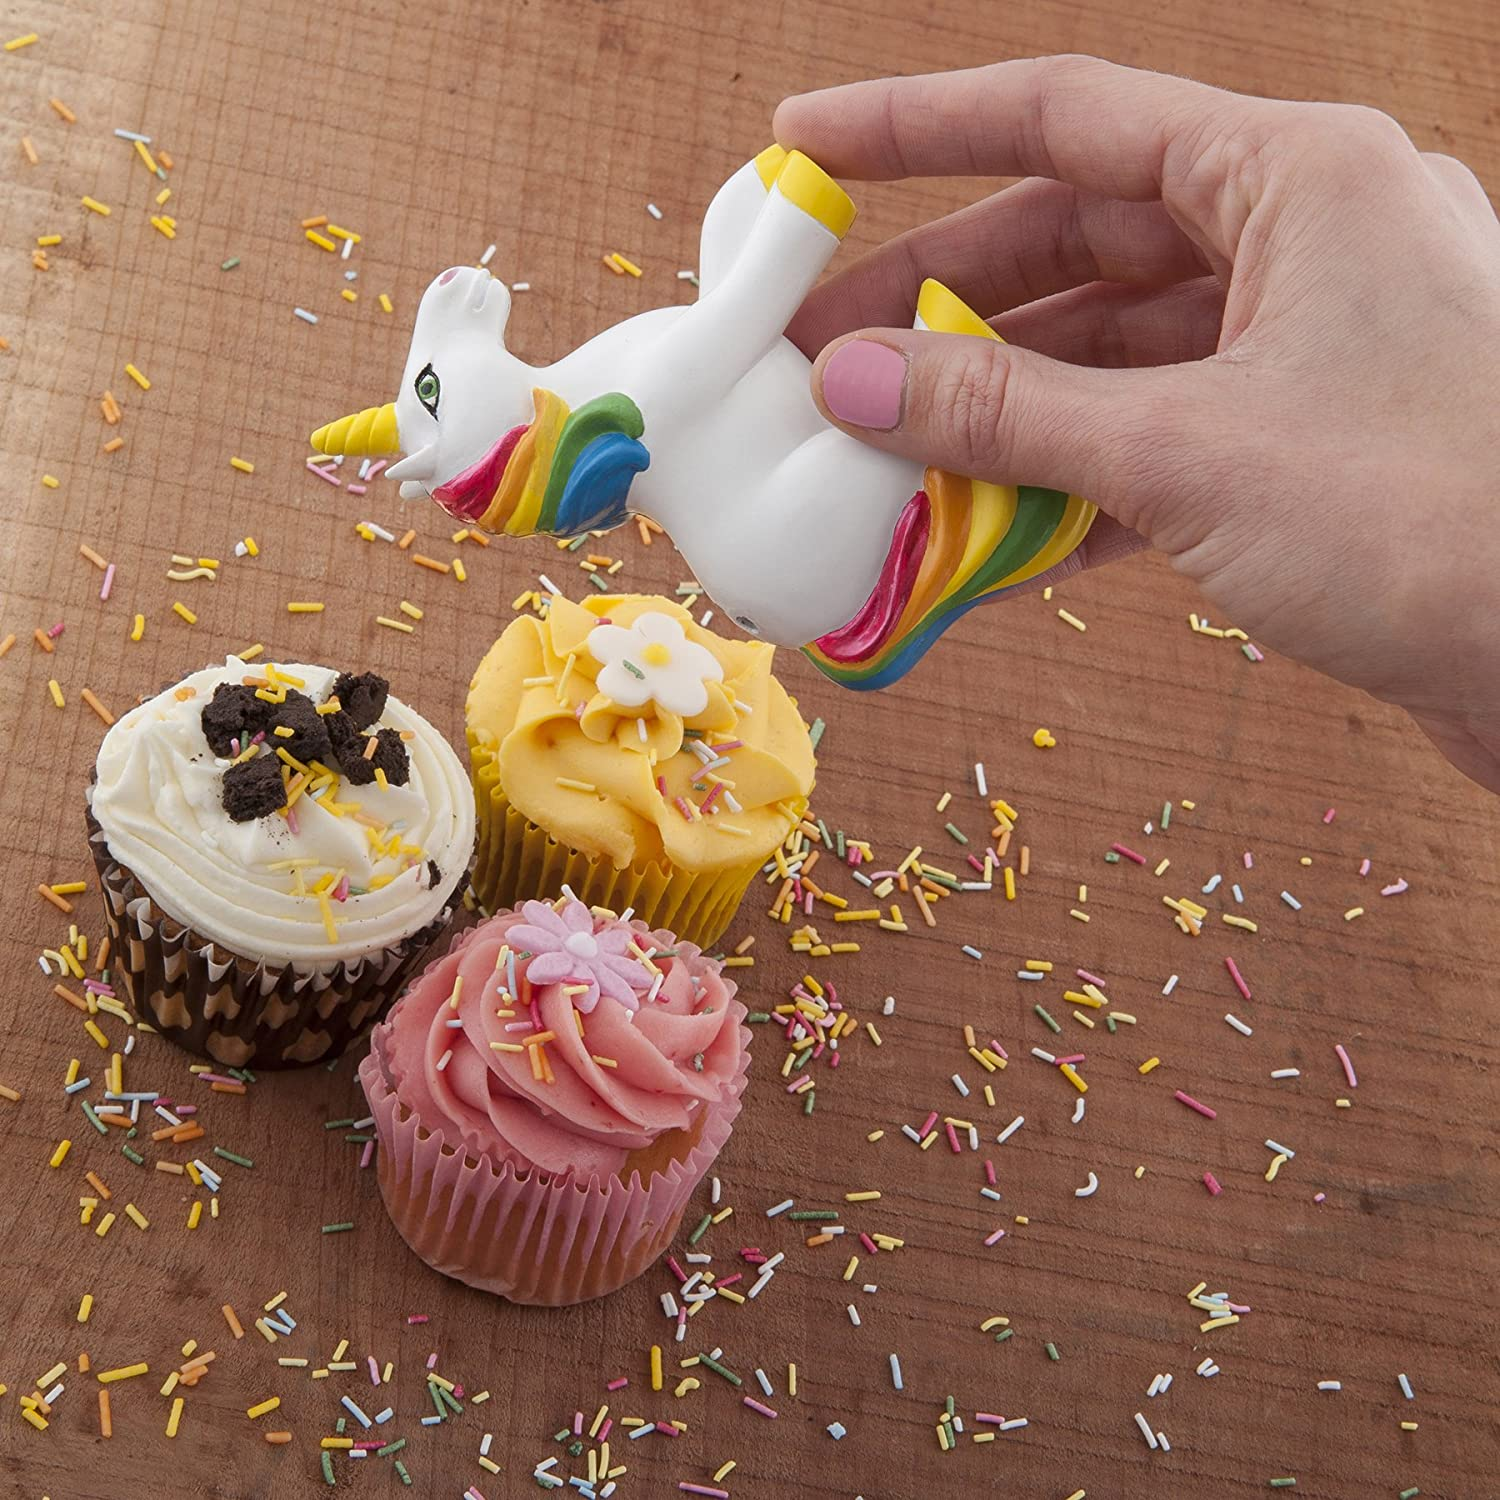 Unicorn Sprinkle Shaker - seriously, we all need one of these!